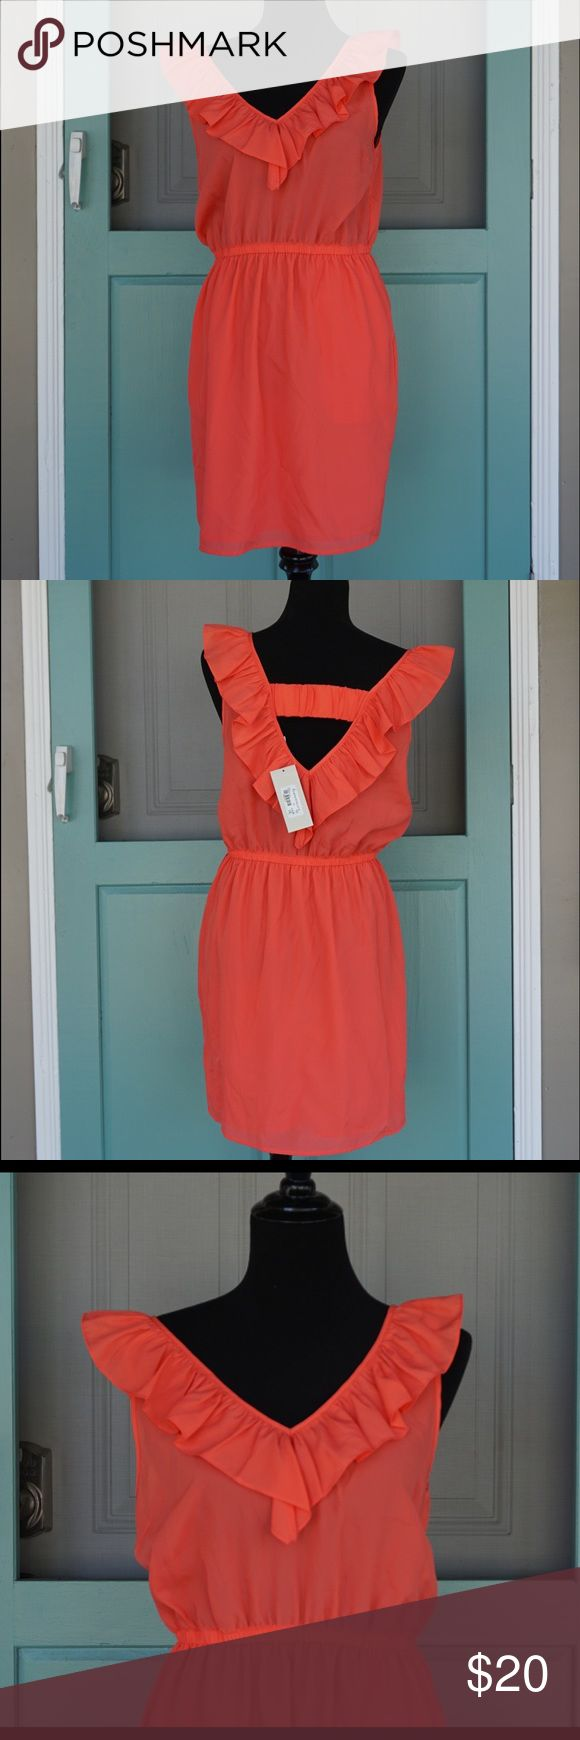 Francesca's Collection dress new with tags. Francesca's Collection dress new with tags. More coral than orange ✨open to offers ✨ Francesca's Collections Dresses Mini